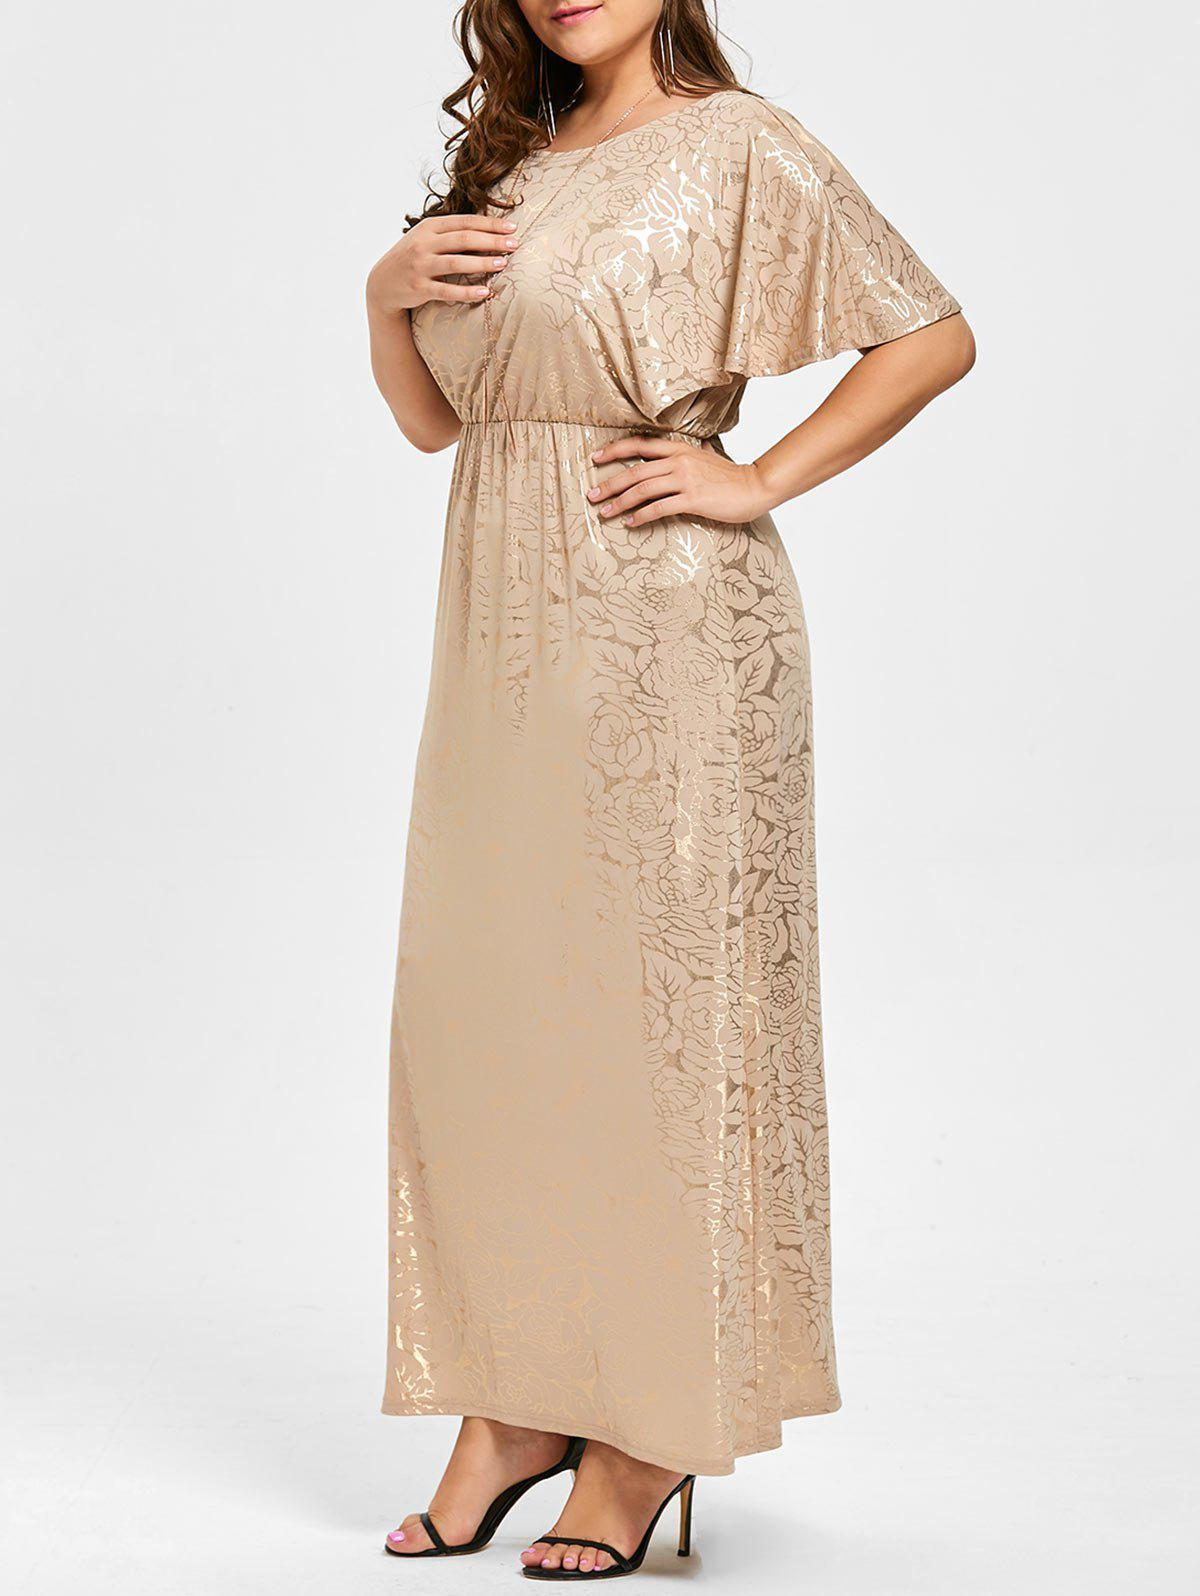 Long Bronze Plus Size Flutter Sleeve DressWOMEN<br><br>Size: 3XL; Color: GOLDEN; Style: Cute; Material: Polyester,Spandex; Silhouette: Straight; Dresses Length: Floor-Length; Neckline: Round Collar; Sleeve Length: Short Sleeves; Pattern Type: Print; With Belt: No; Season: Fall,Spring,Summer; Weight: 0.5350kg; Package Contents: 1 x Dress;